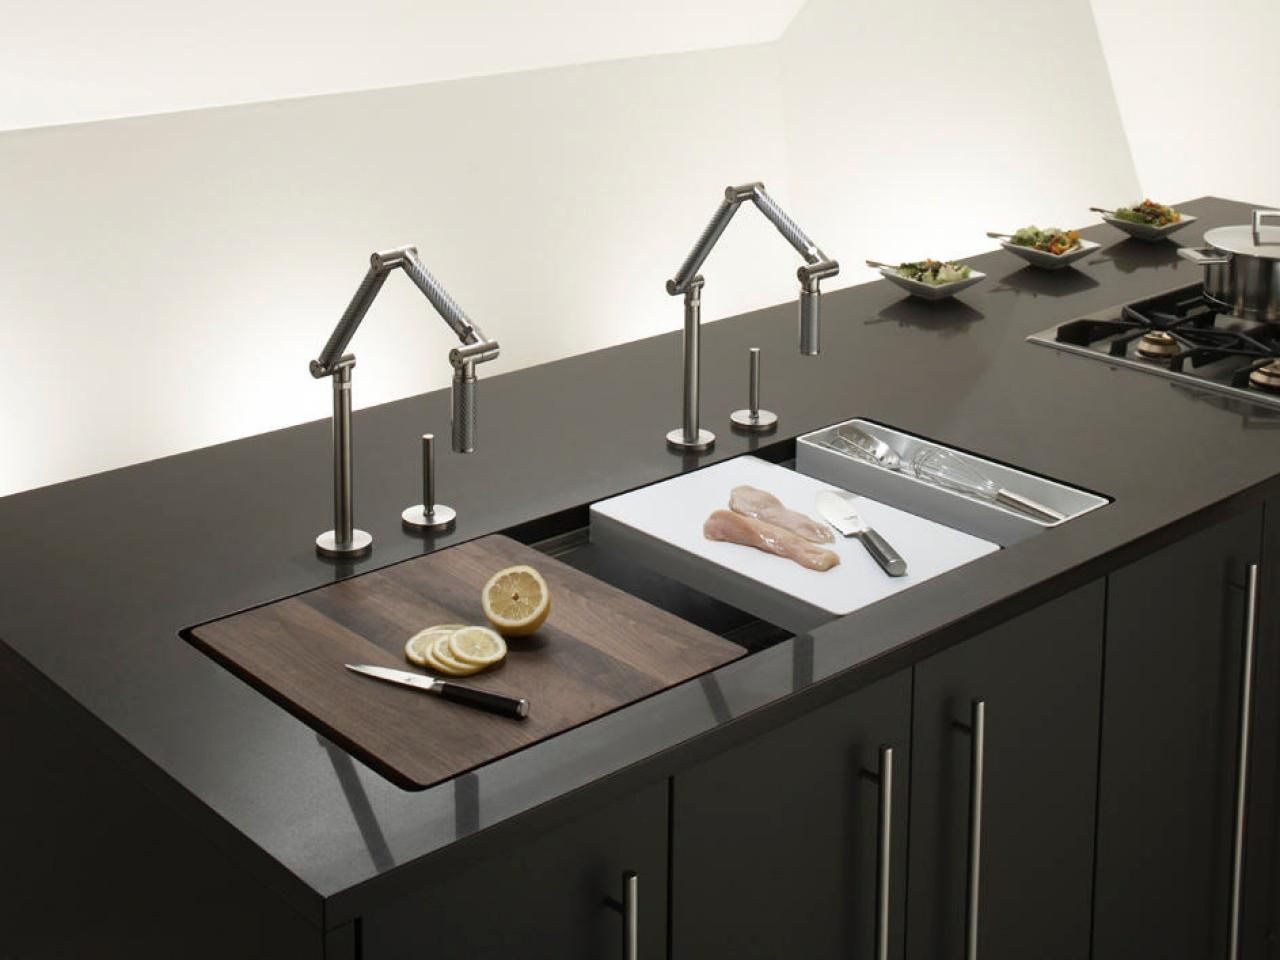 High End Kitchen Sinks Decor Ideas On A Budget Check More At Http